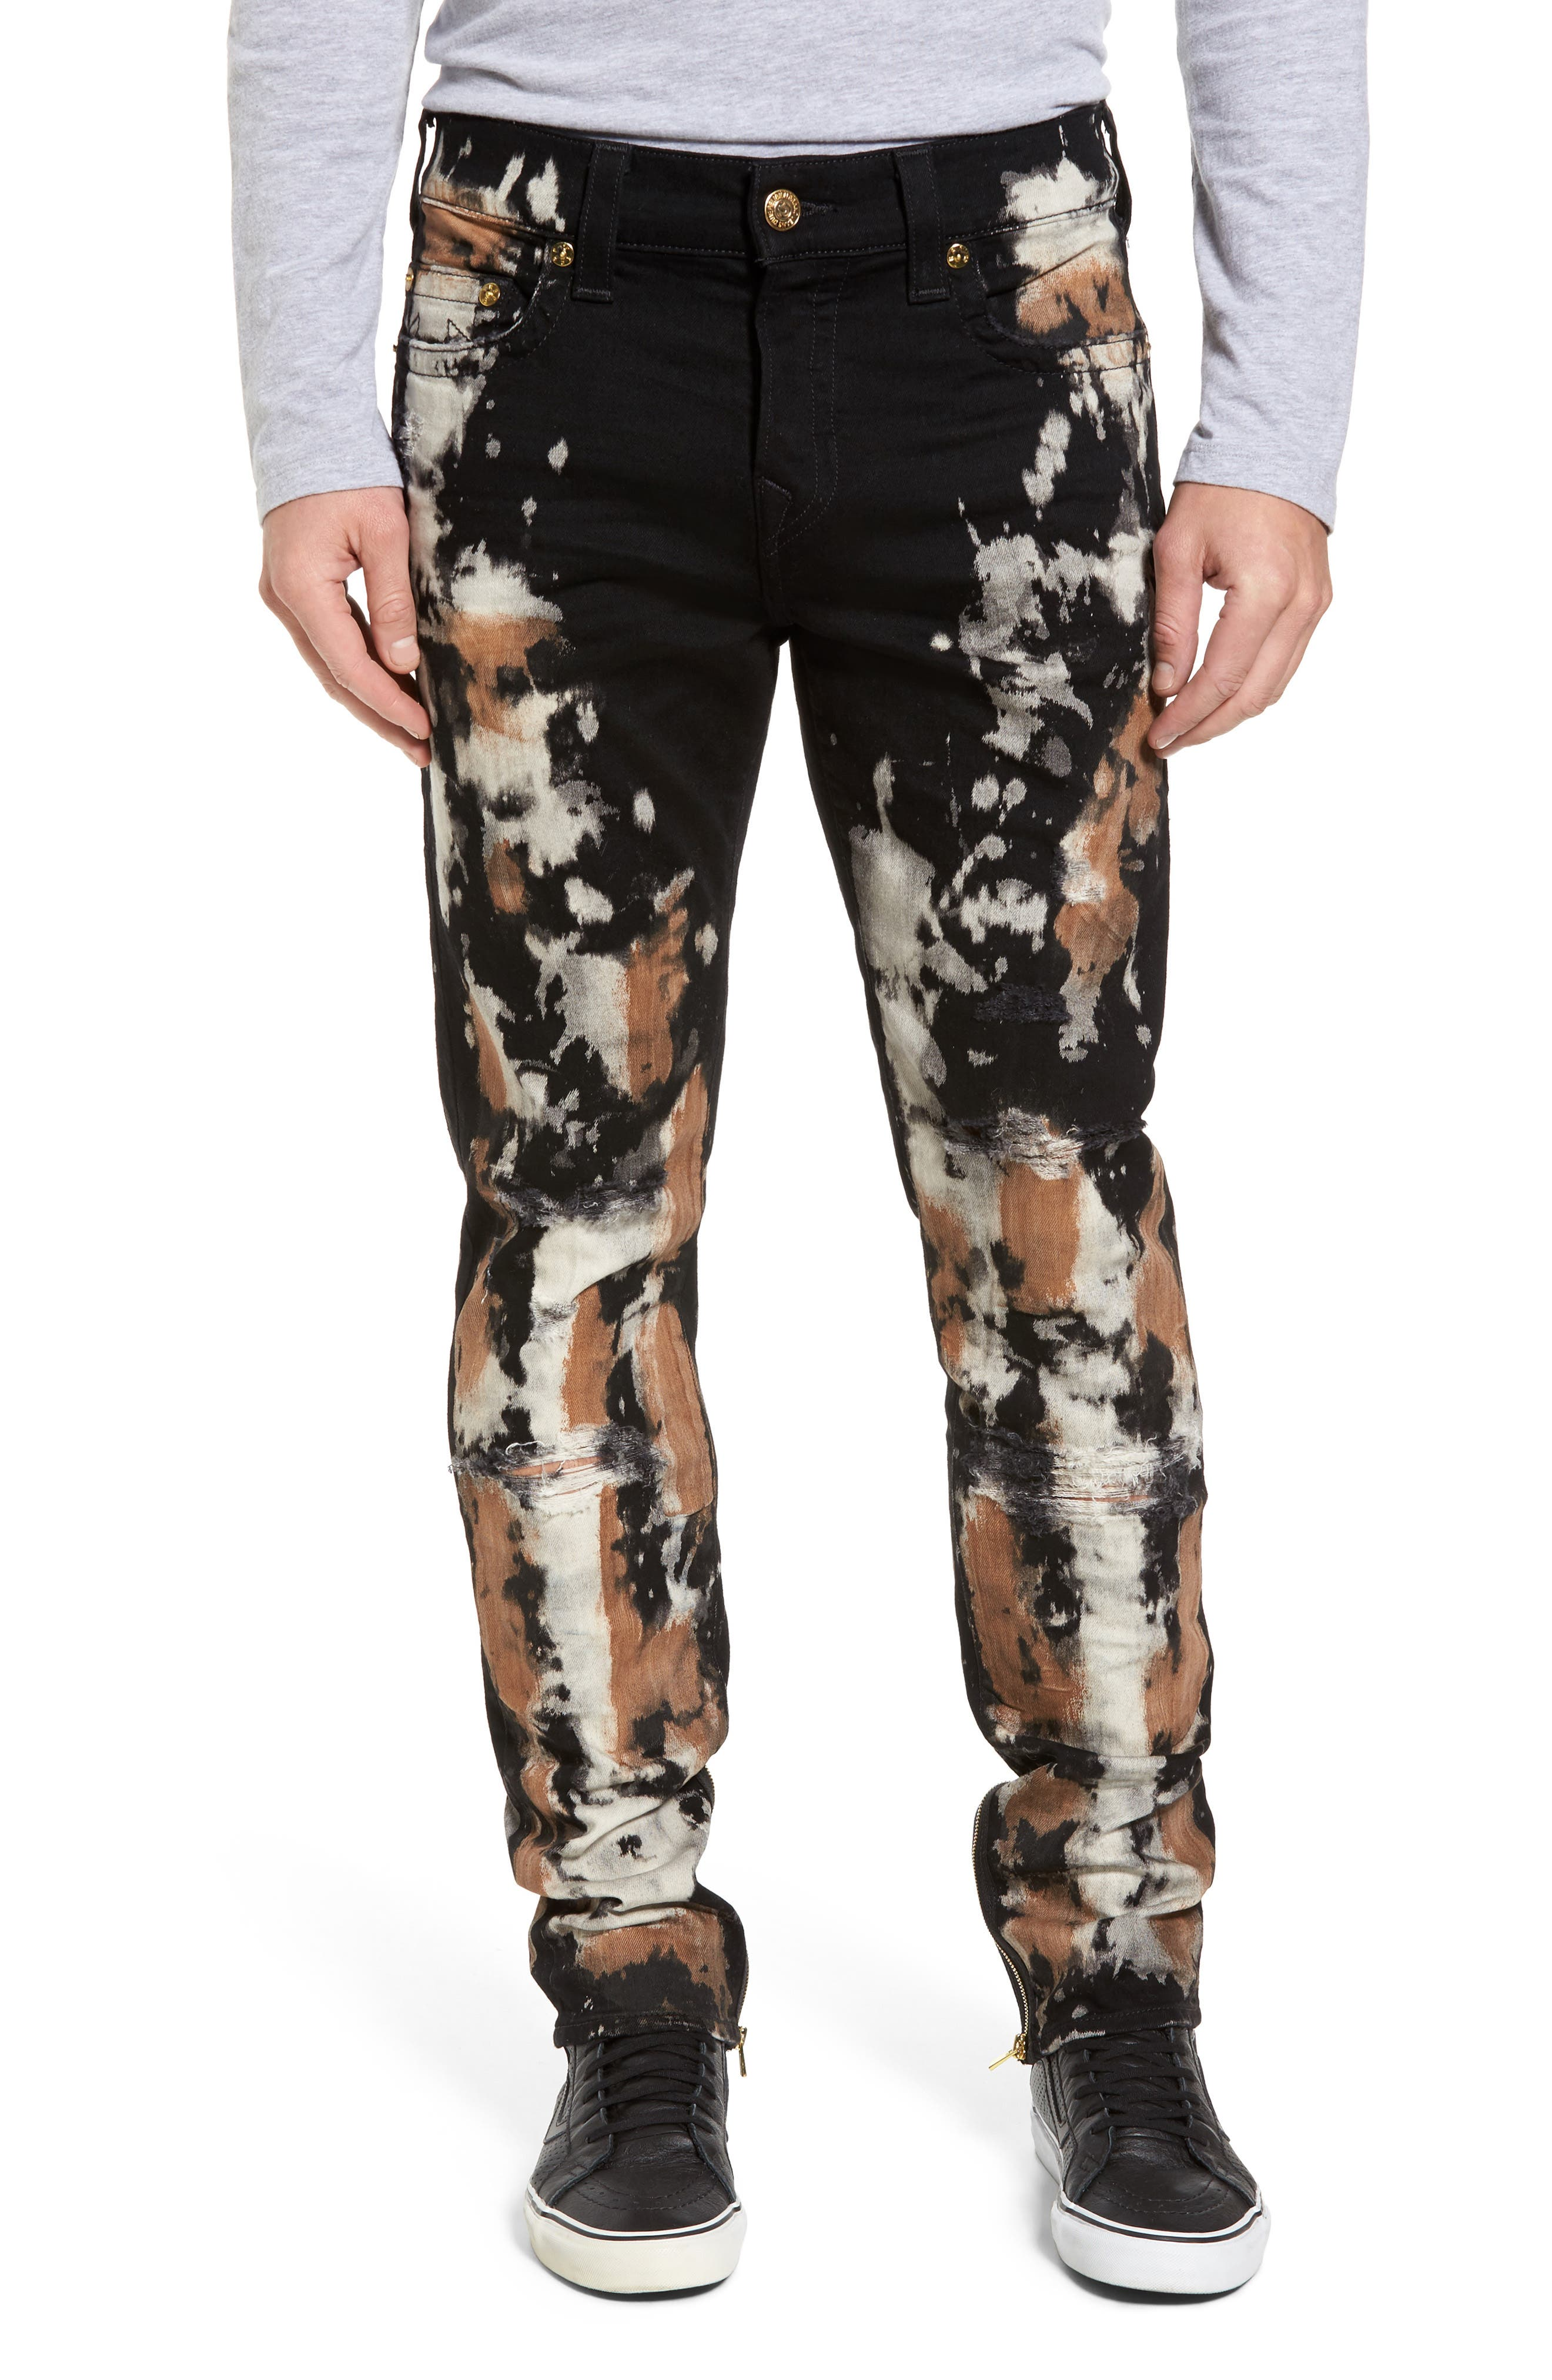 Rocco Skinny Fit Jeans,                         Main,                         color, Worn Moon Storm